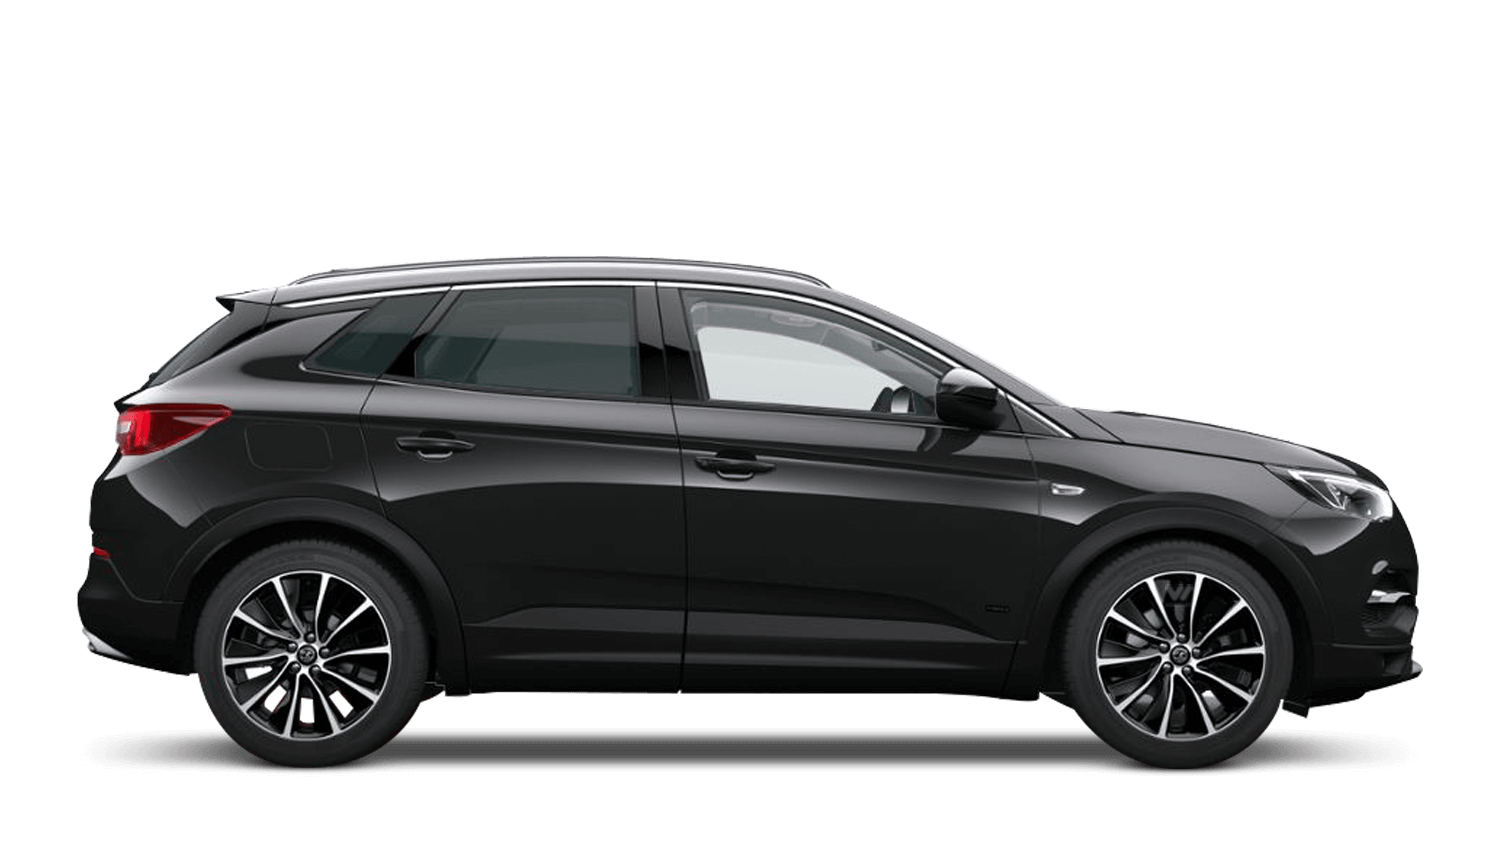 Diamond Black (Metallic) Vauxhall Grandland X Hybrid